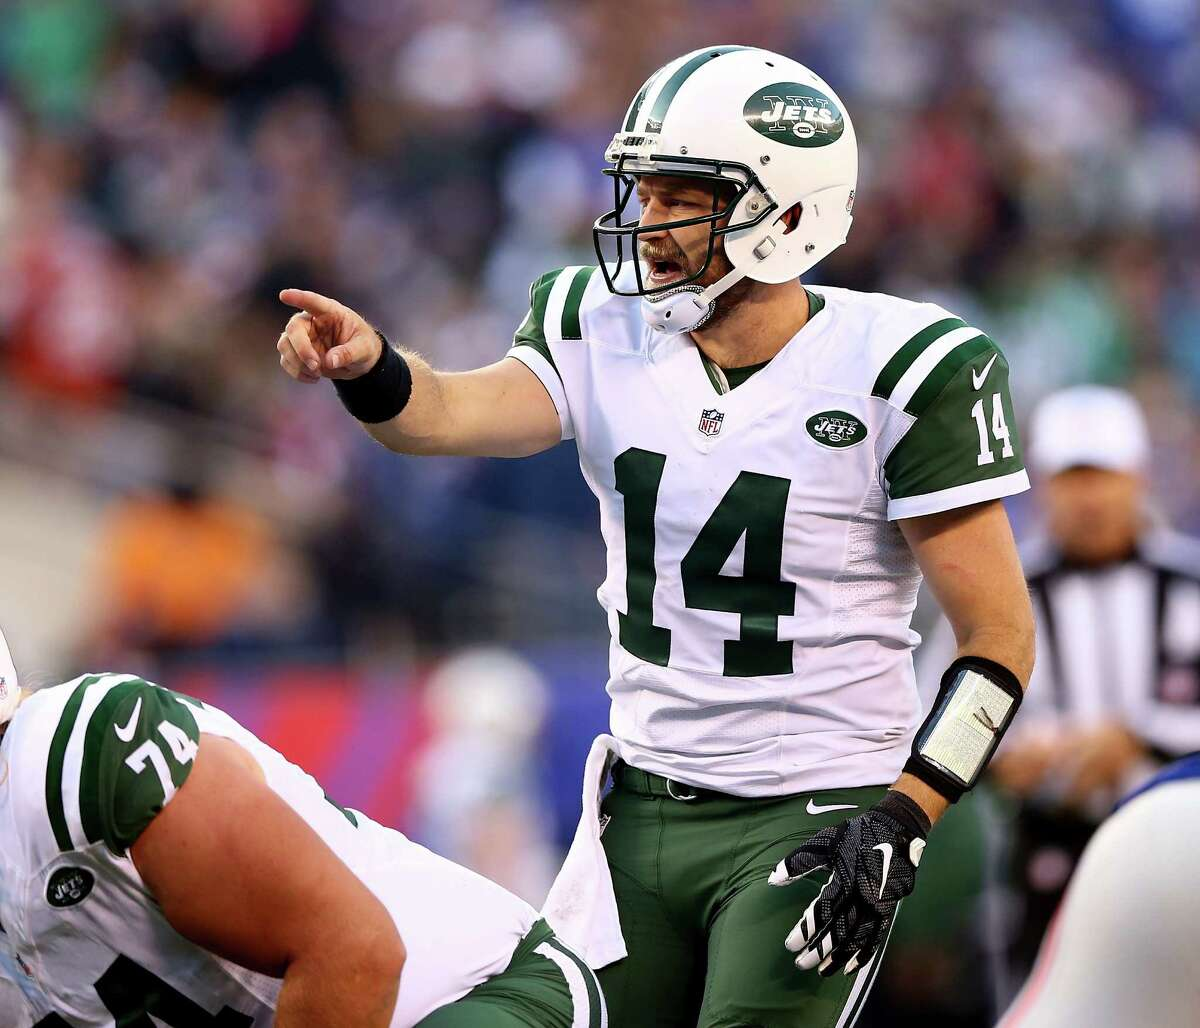 EAST RUTHERFORD, NJ - DECEMBER 06: Ryan Fitzpatrick #14 of the New York Jets calls out the play in the fourth quarter against the New York Giants on December 6, 2015 at MetLife Stadium in East Rutherford, New Jersey. (Photo by Elsa/Getty Images) ORG XMIT: 587435561